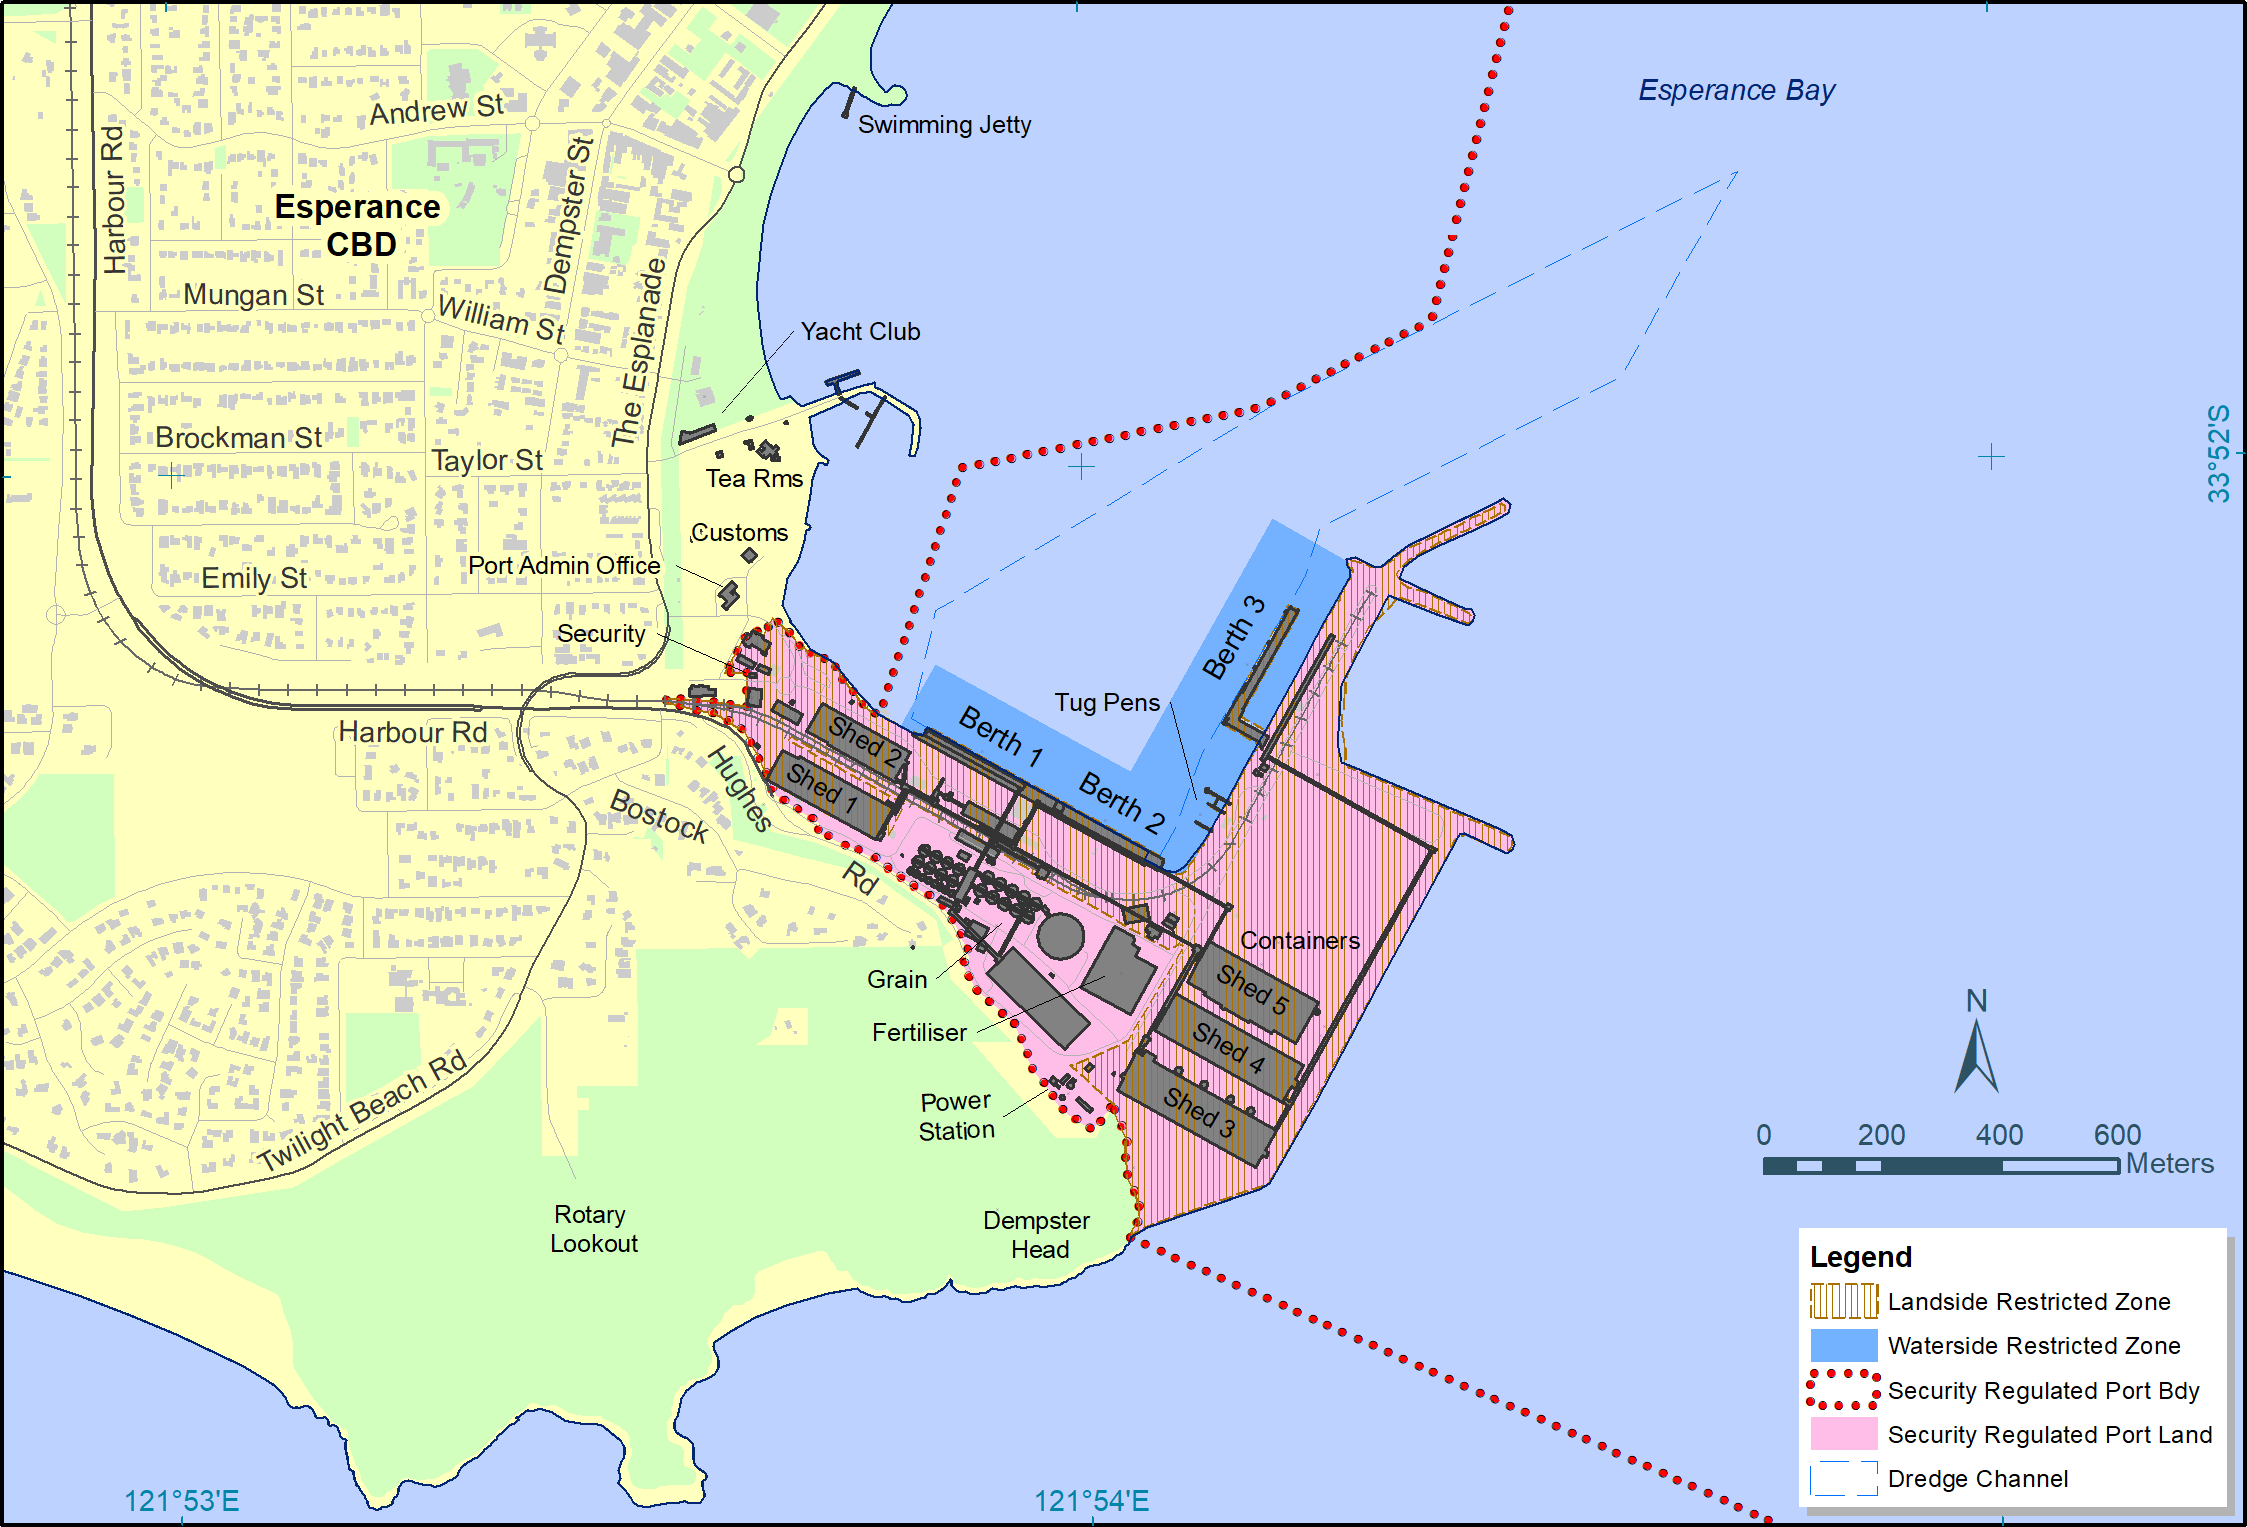 Esperance Port Layout and Security Zones